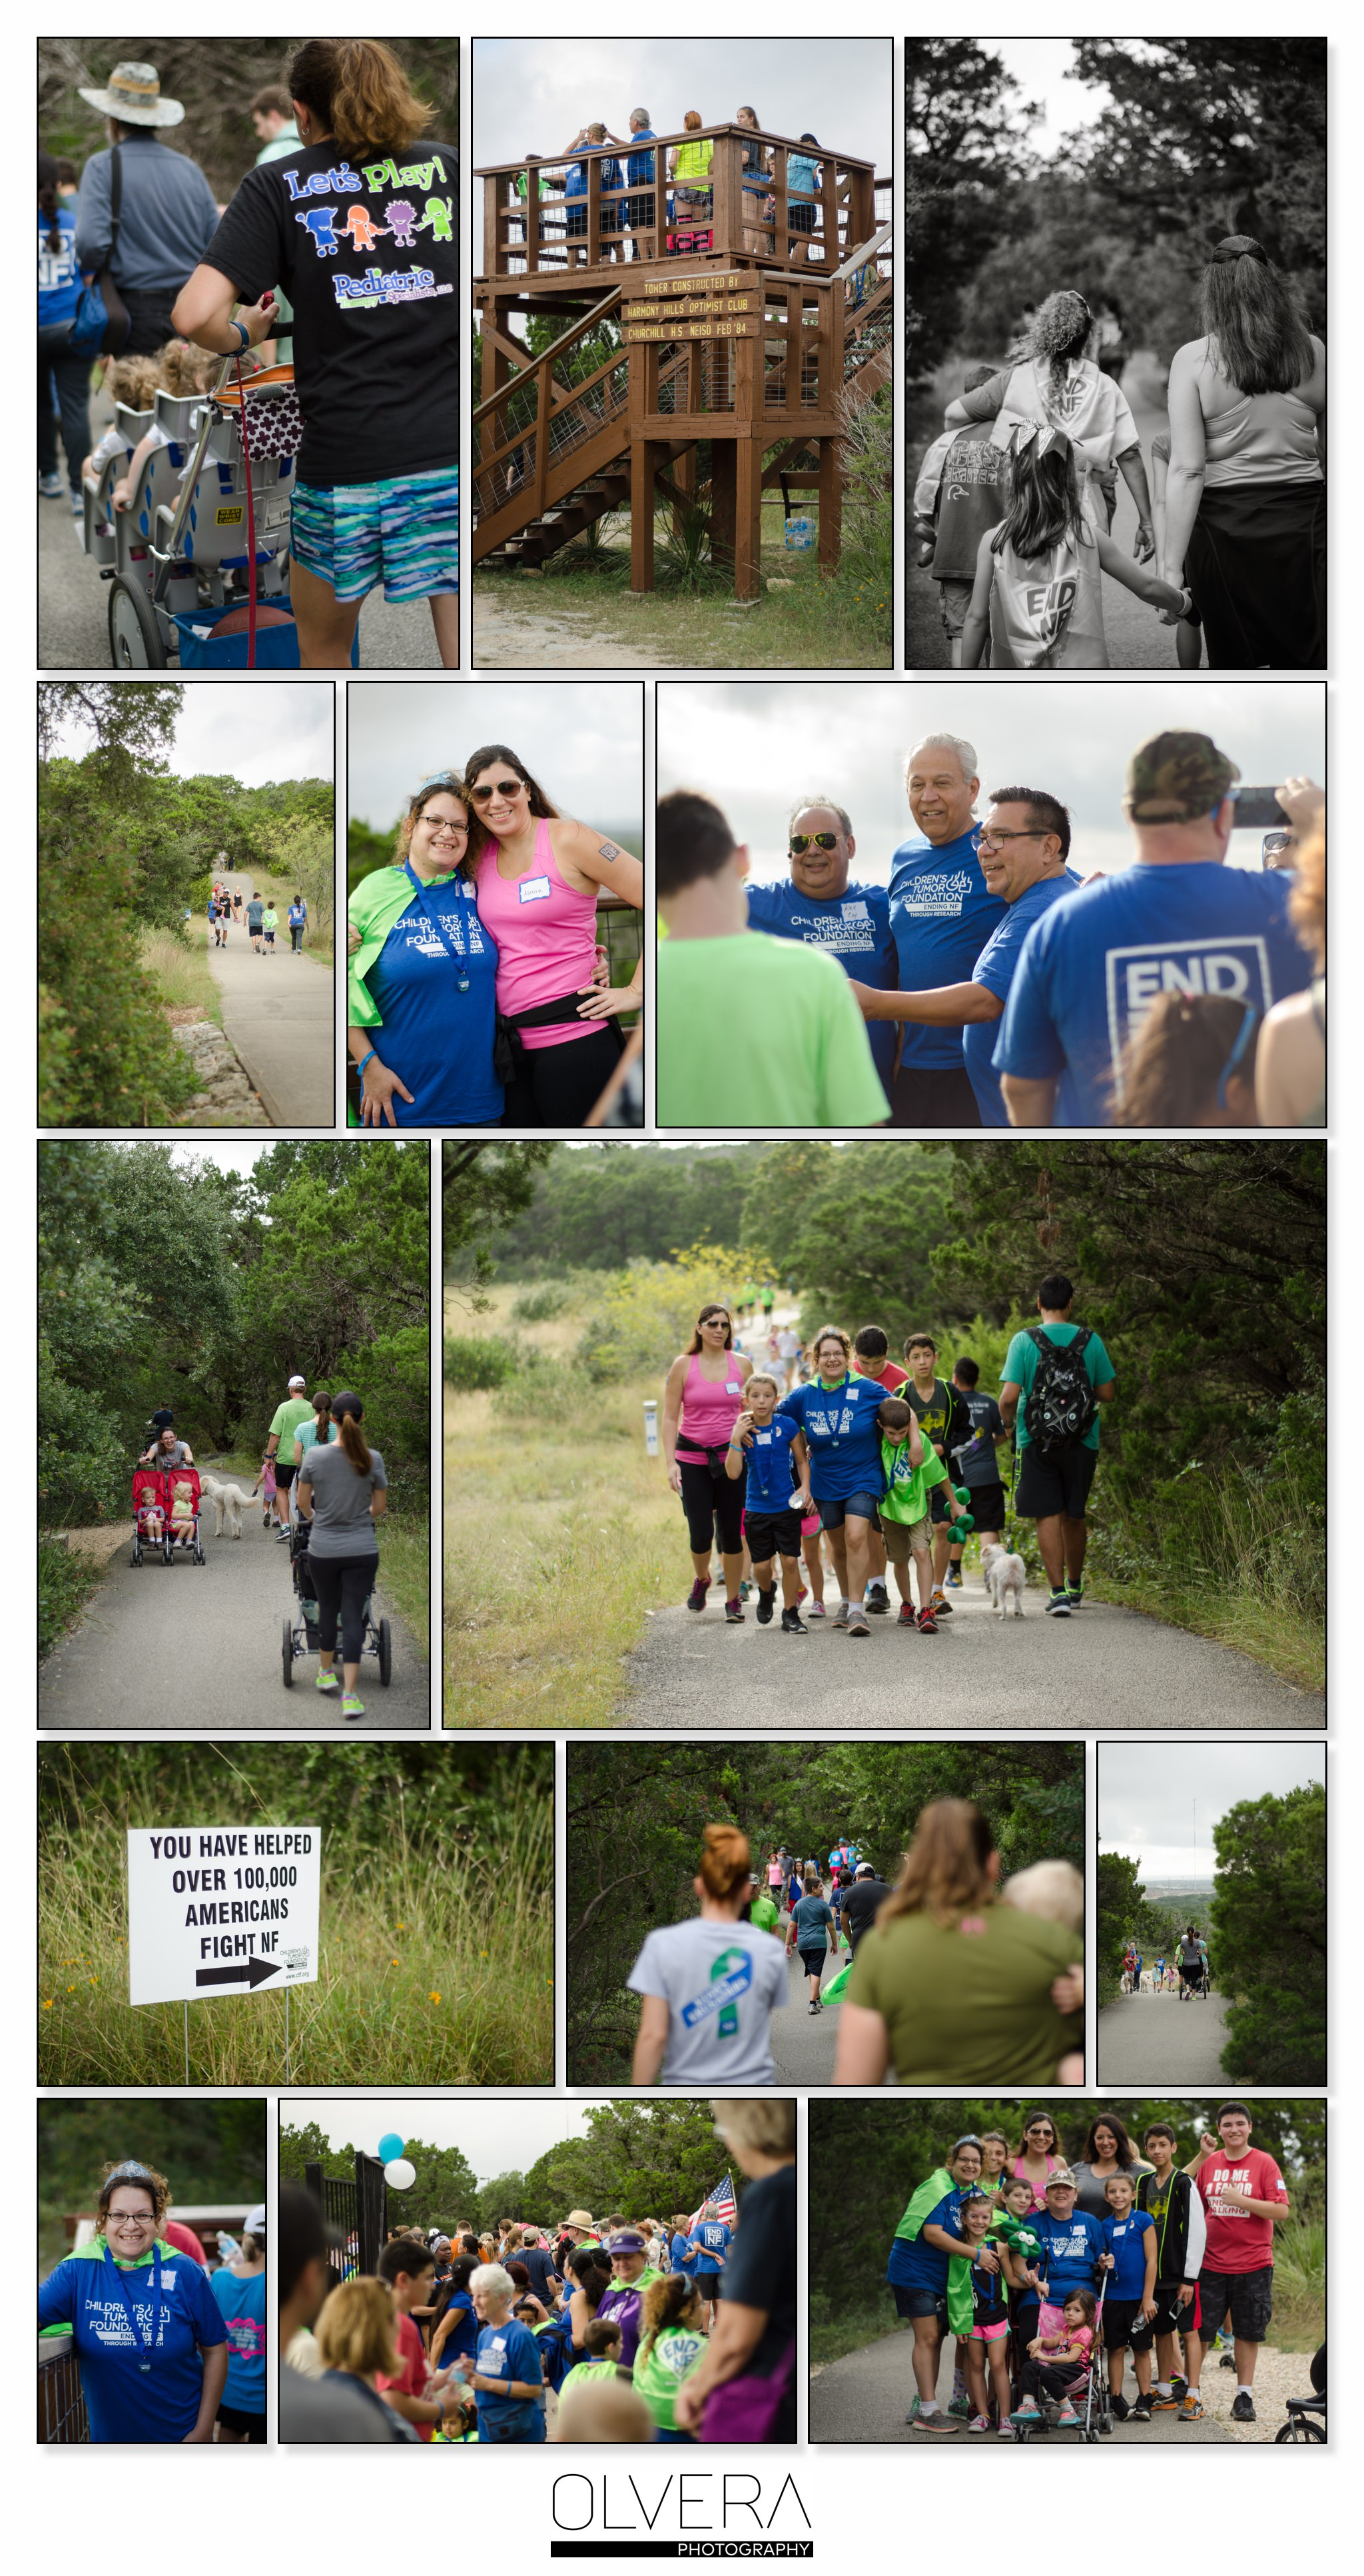 Children's Tumor Foundation_NF Walk_San Antonio_TX 5